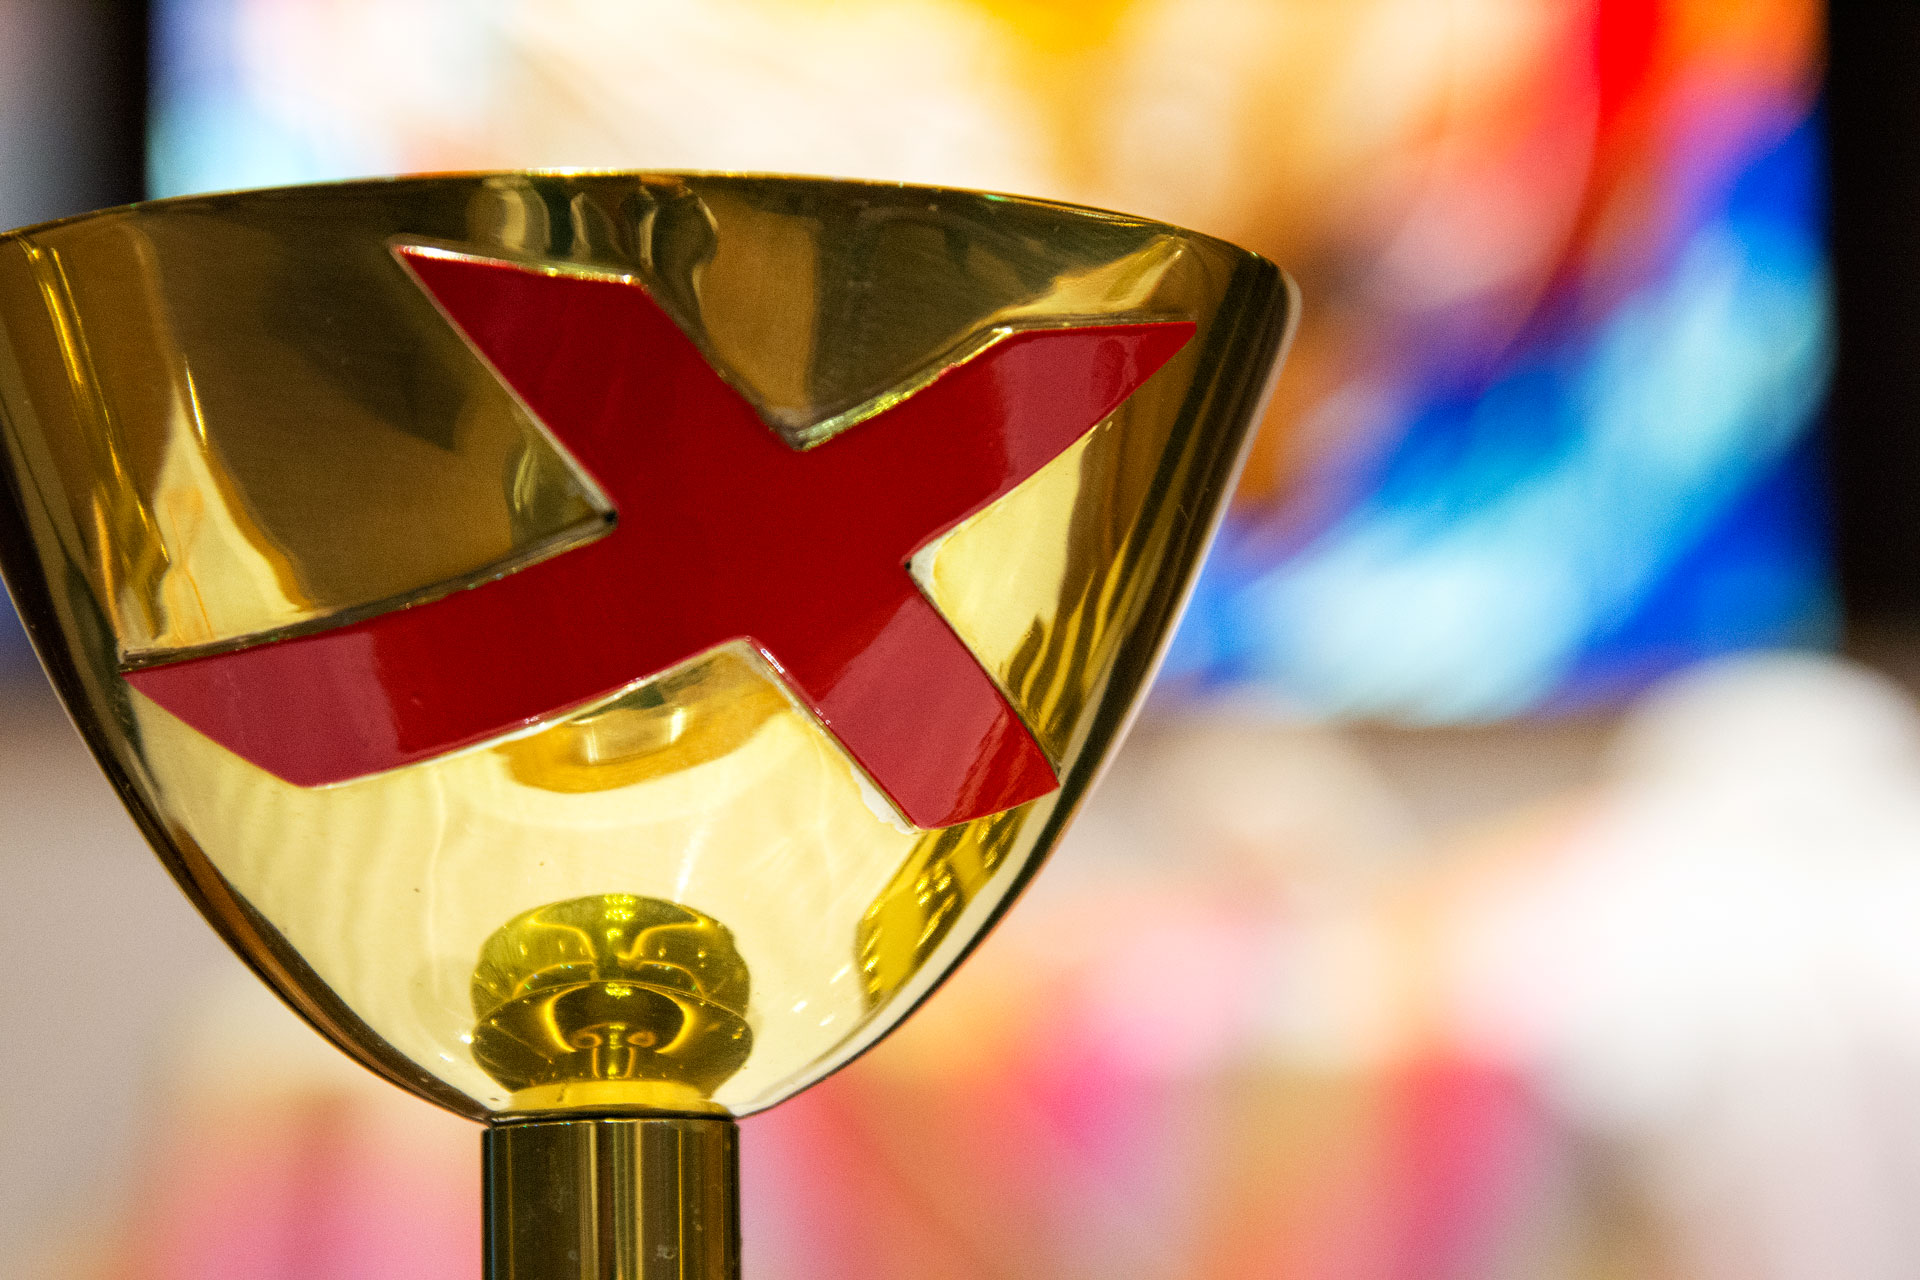 Photo of a Chalice